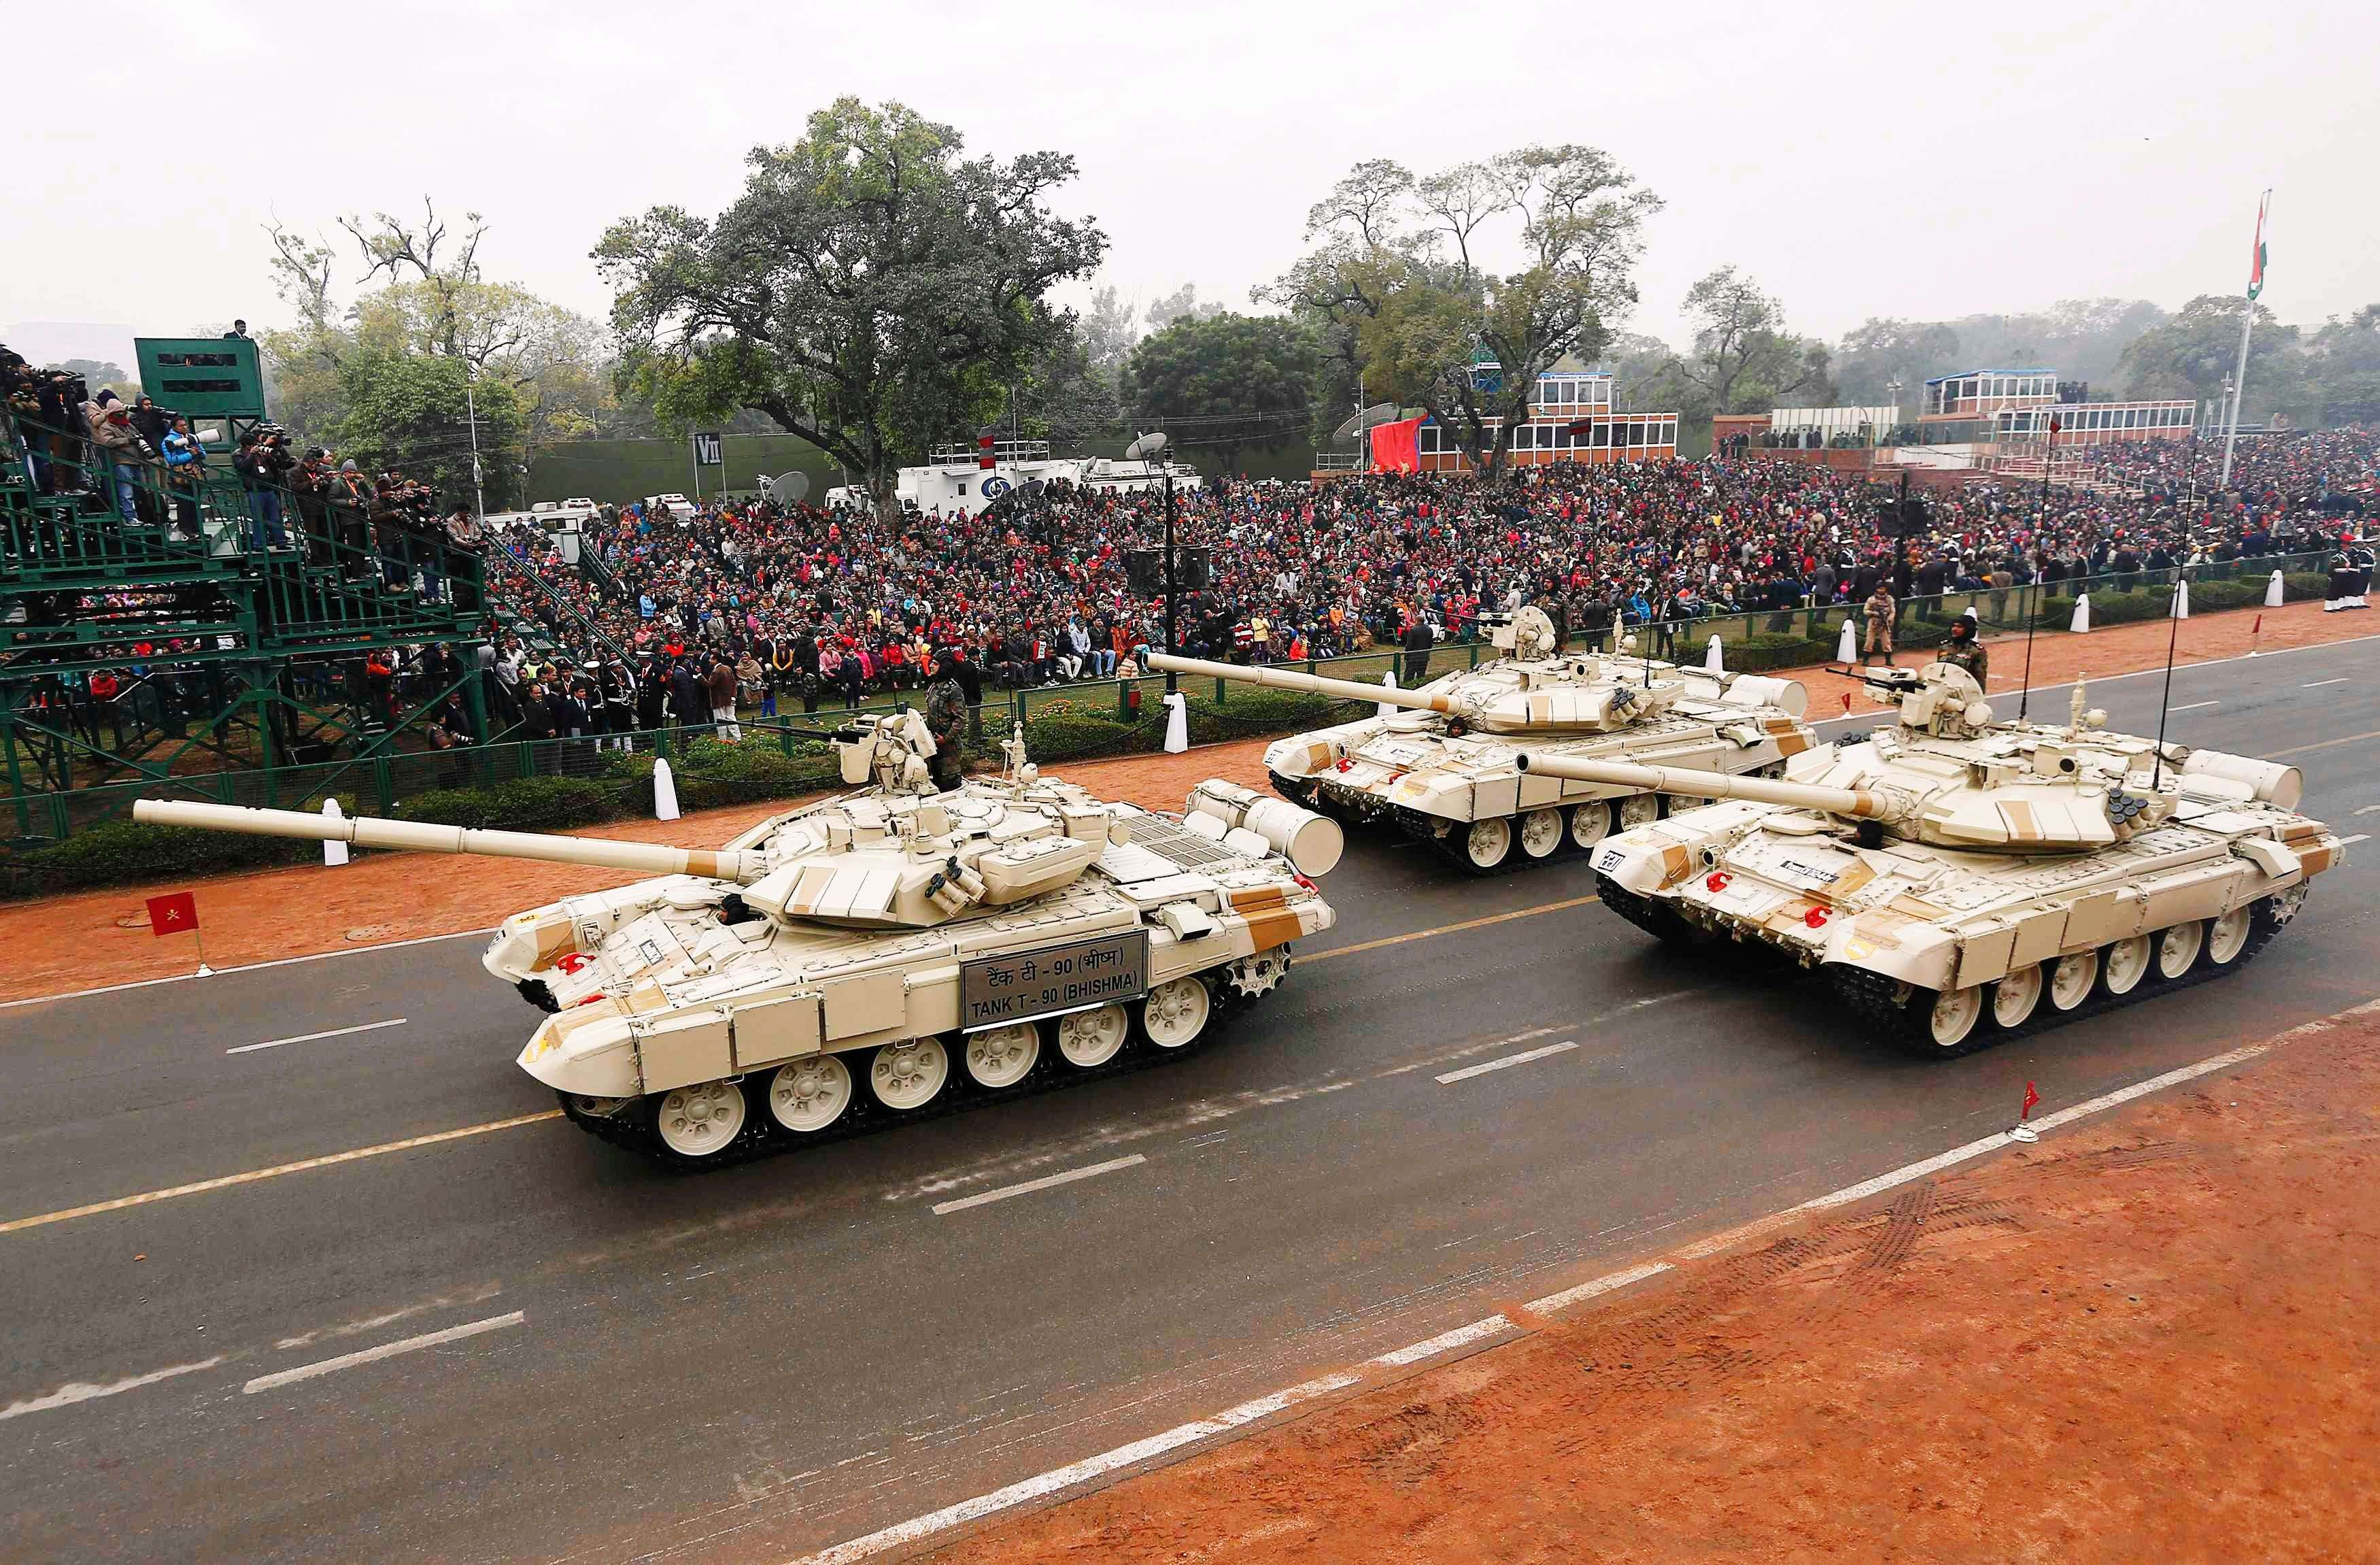 Indian Army's T-90 Bhishma tanks take part in a full dress rehearsal for the Republic Day parade in New Delhi. (REUTERS/Adnan Abidi)